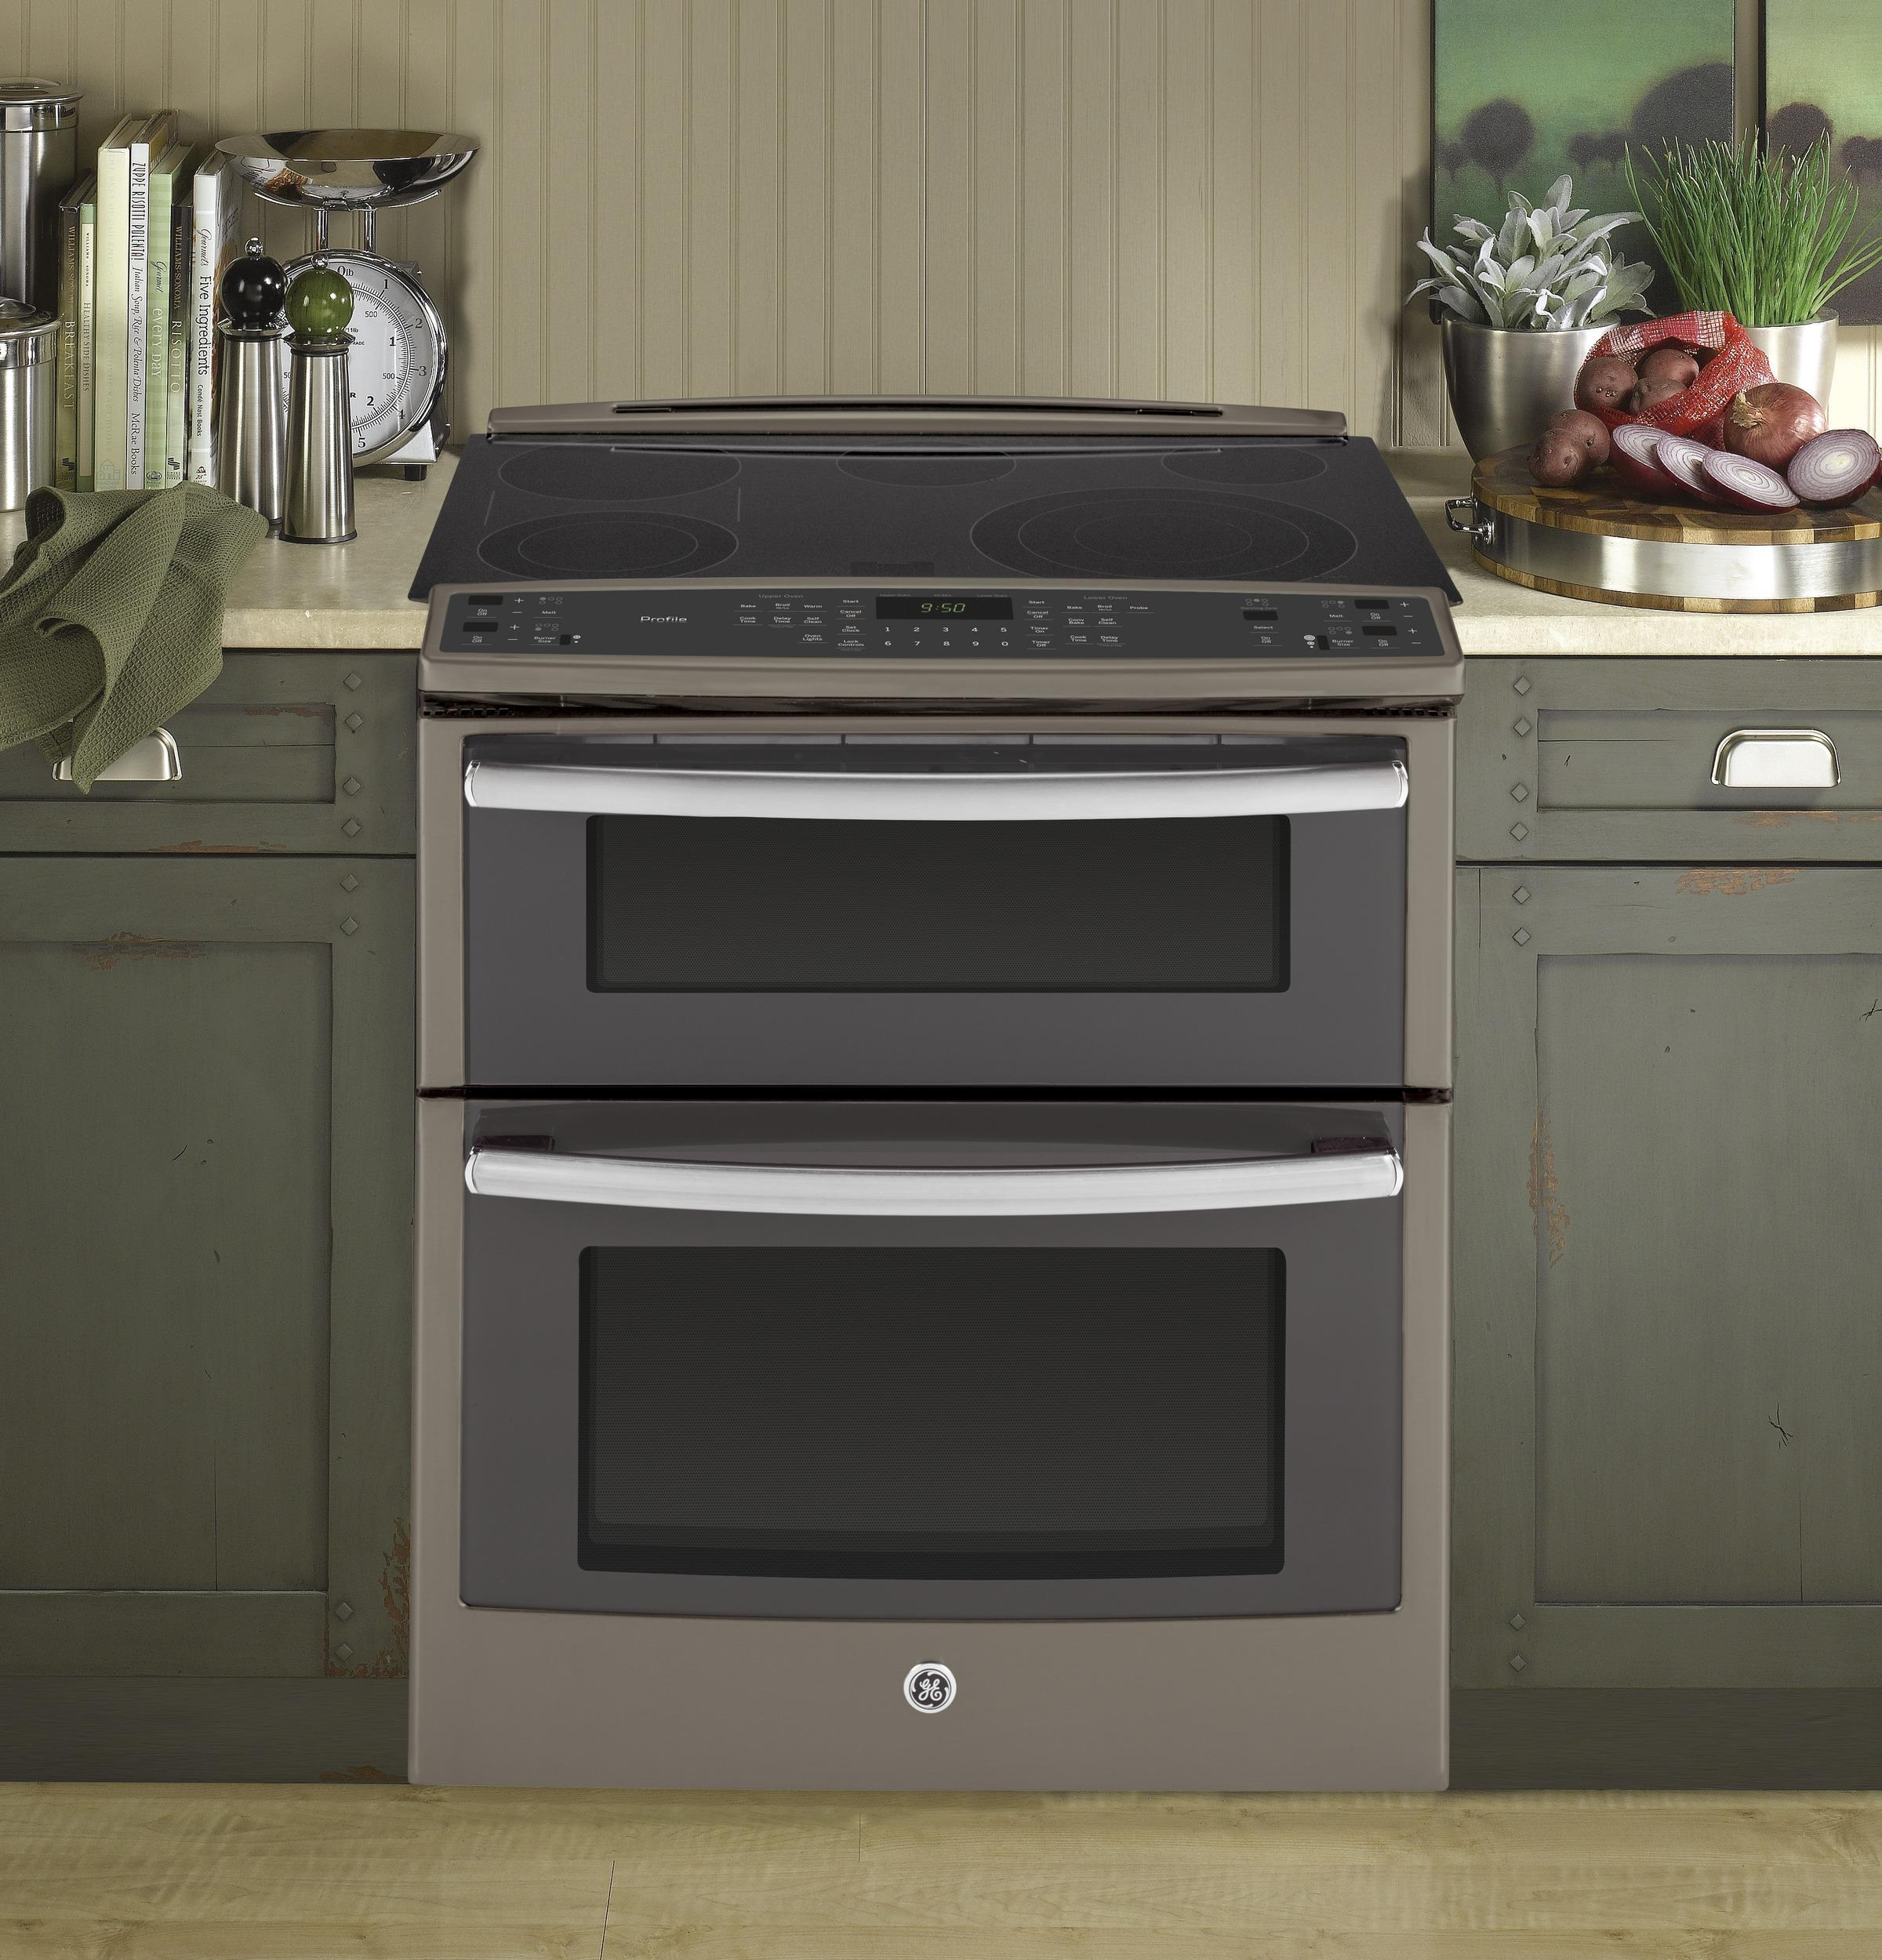 Ge profile performance Oven owner s Manual on